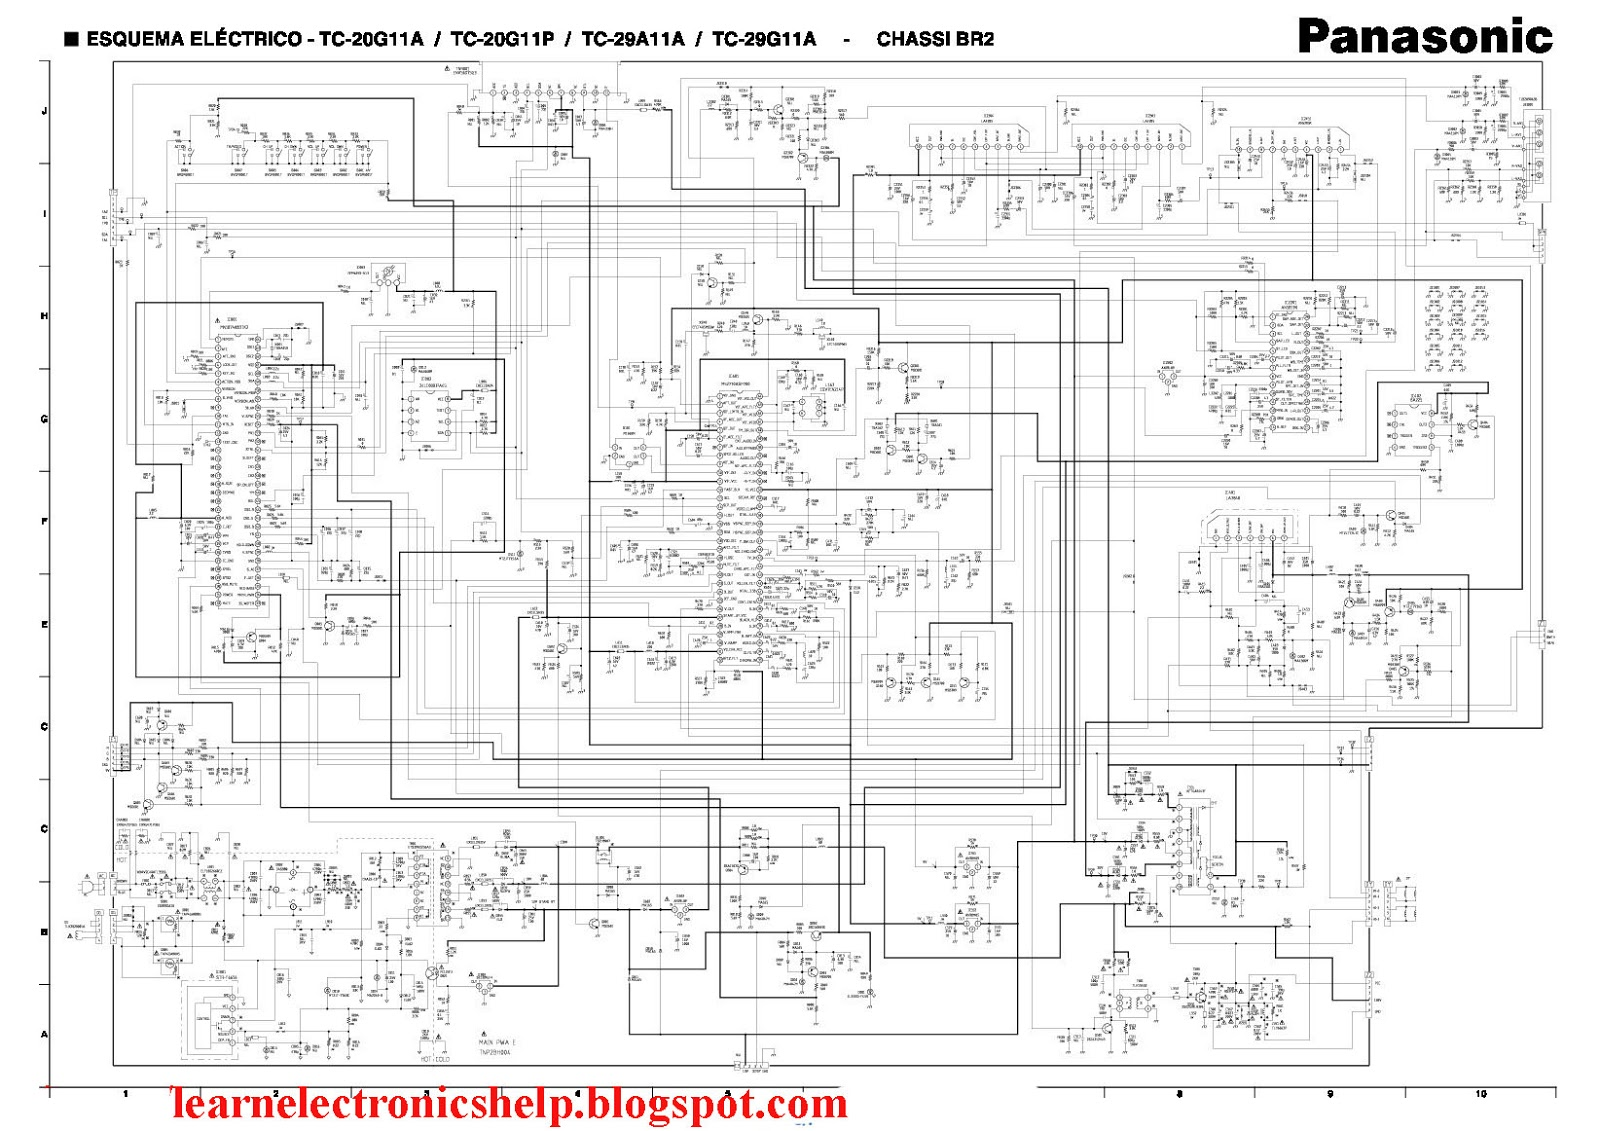 panasonic tv circuit diagram learn basic electronics circuit rh learnelectronicshelp blogspot com VCR Wiring-Diagram Samsung DVD Wiring-Diagram